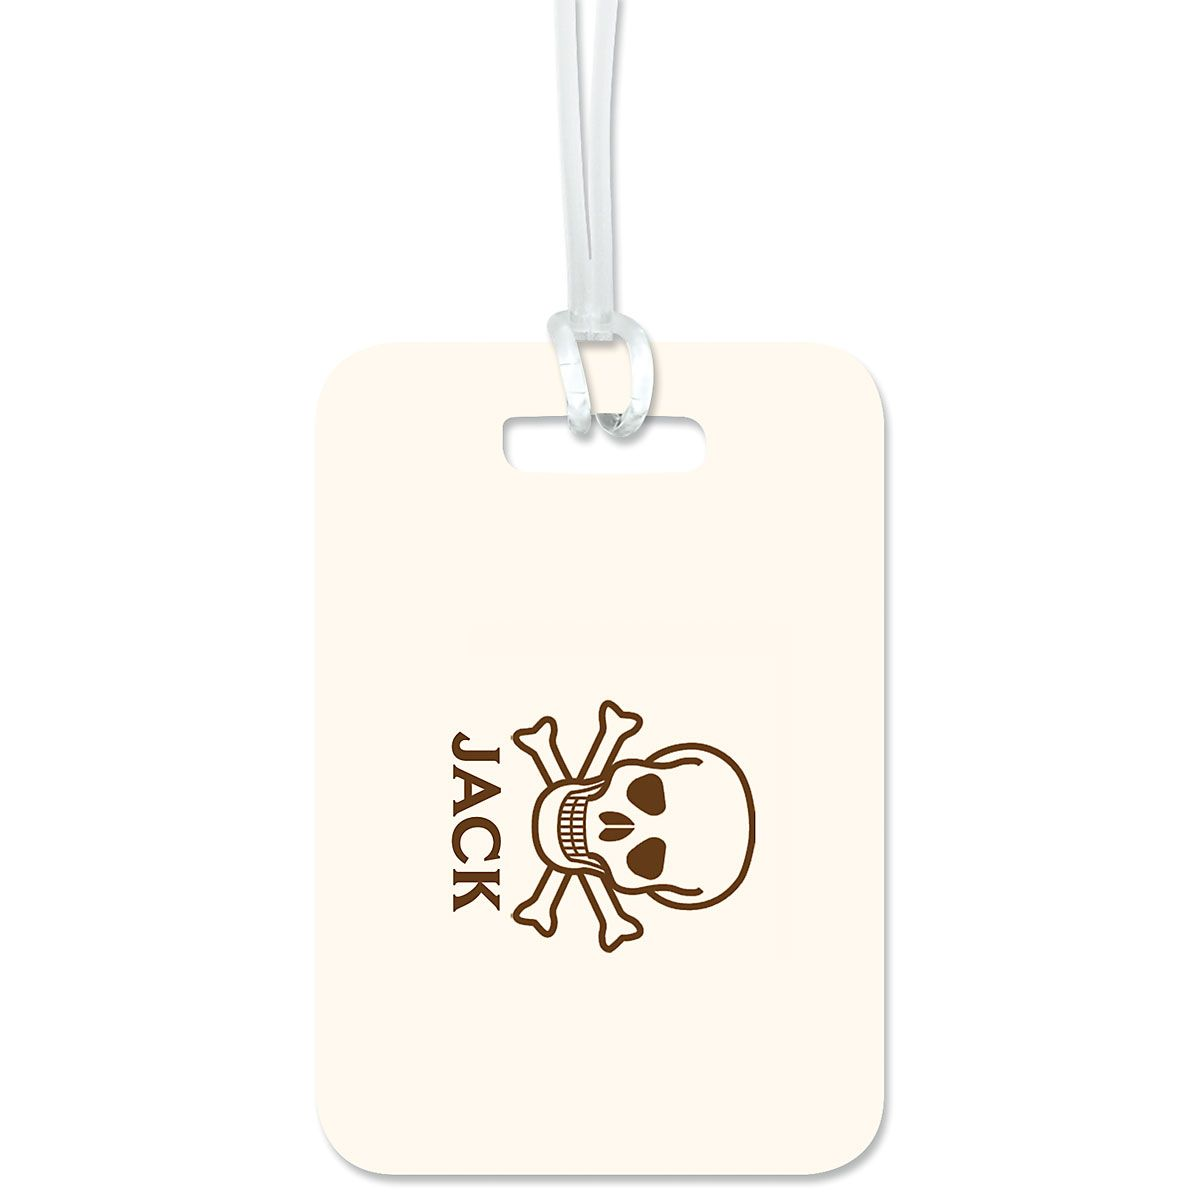 Skull & Crossbones Personalized Luggage Tag